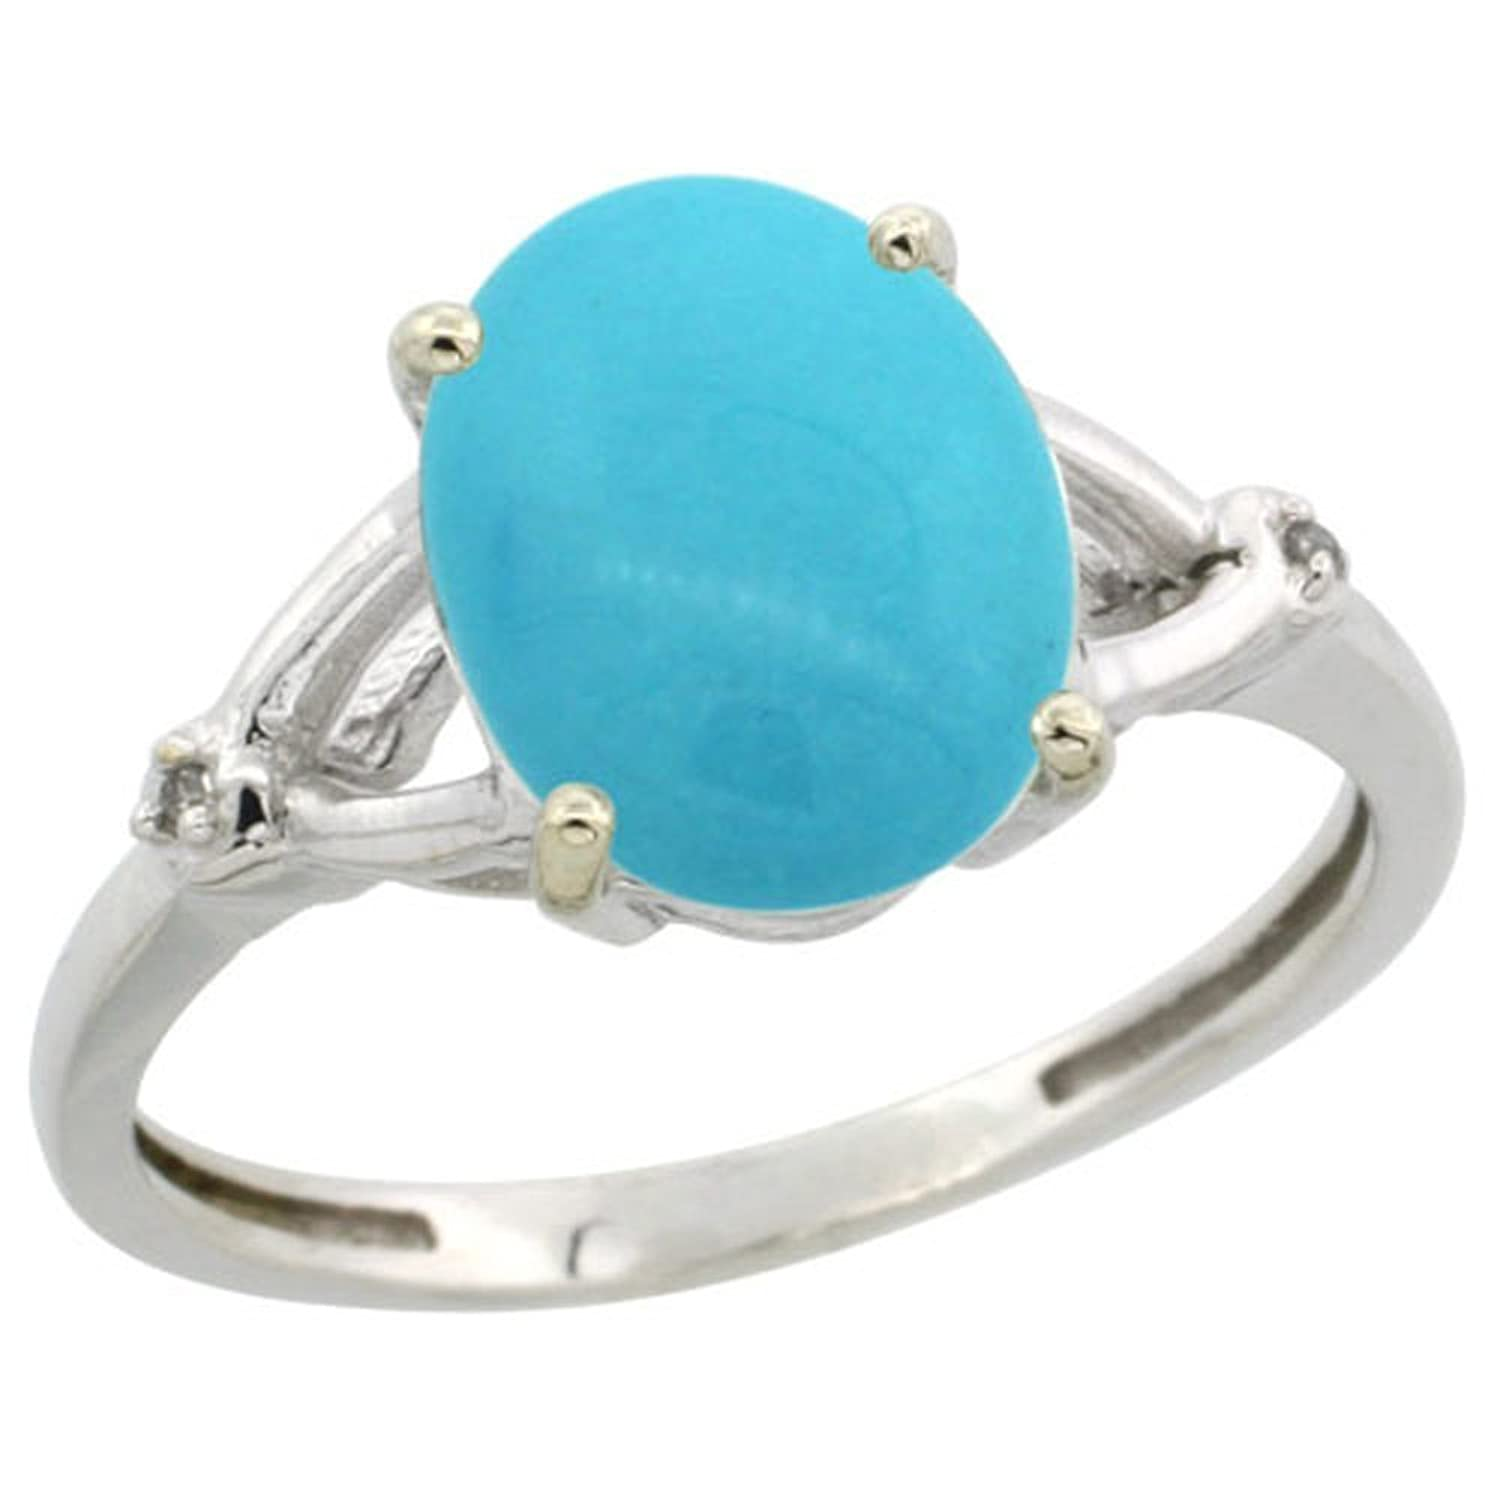 turquoise men rings five kinds resin gemstone hot color from with women stone antique of product silver vintage two